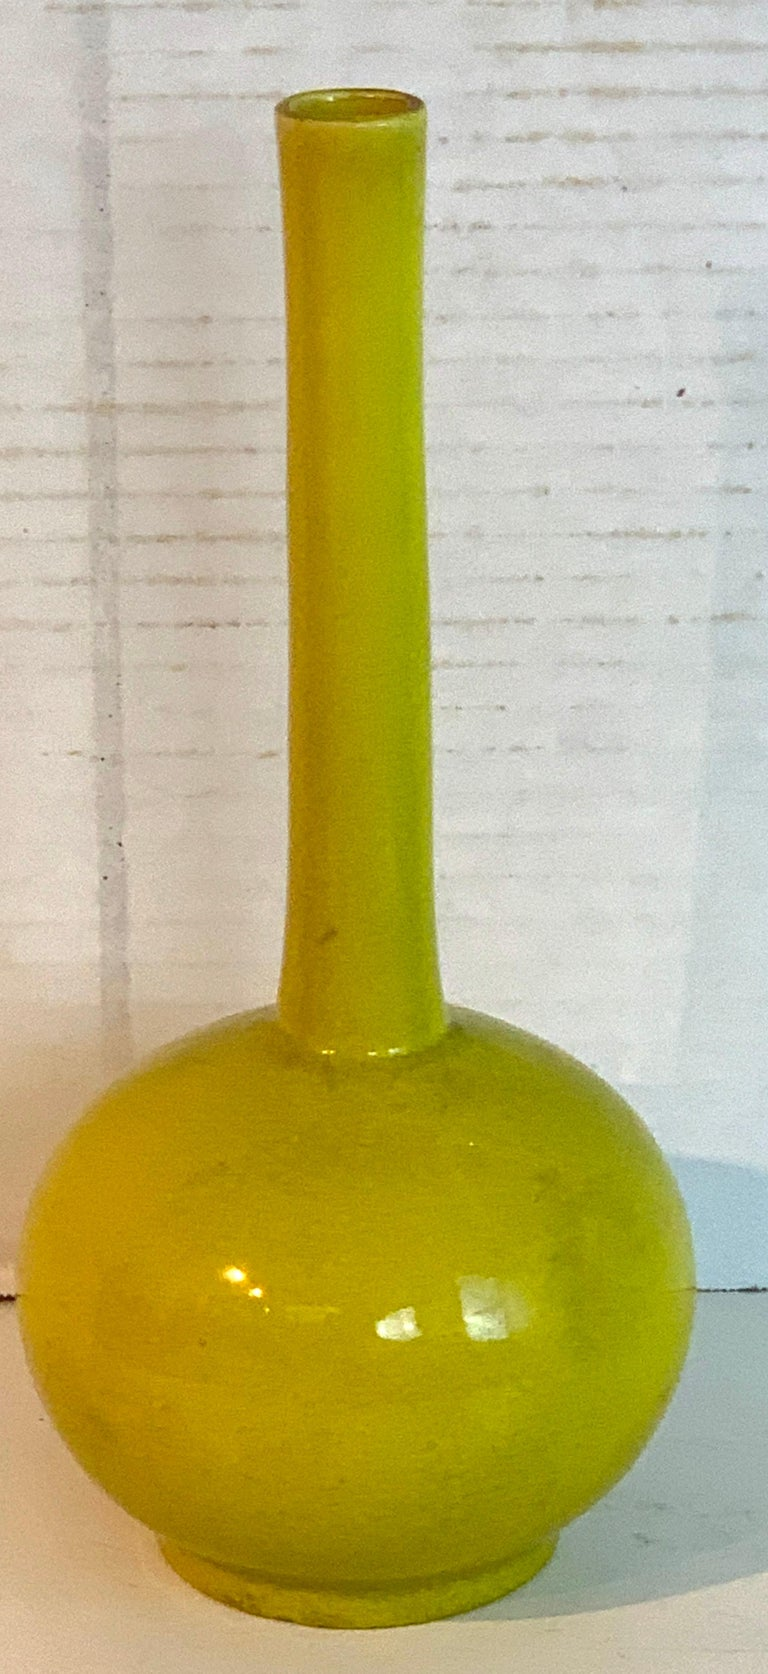 Chinese export yellow monochrome bottle vase, circa 1900